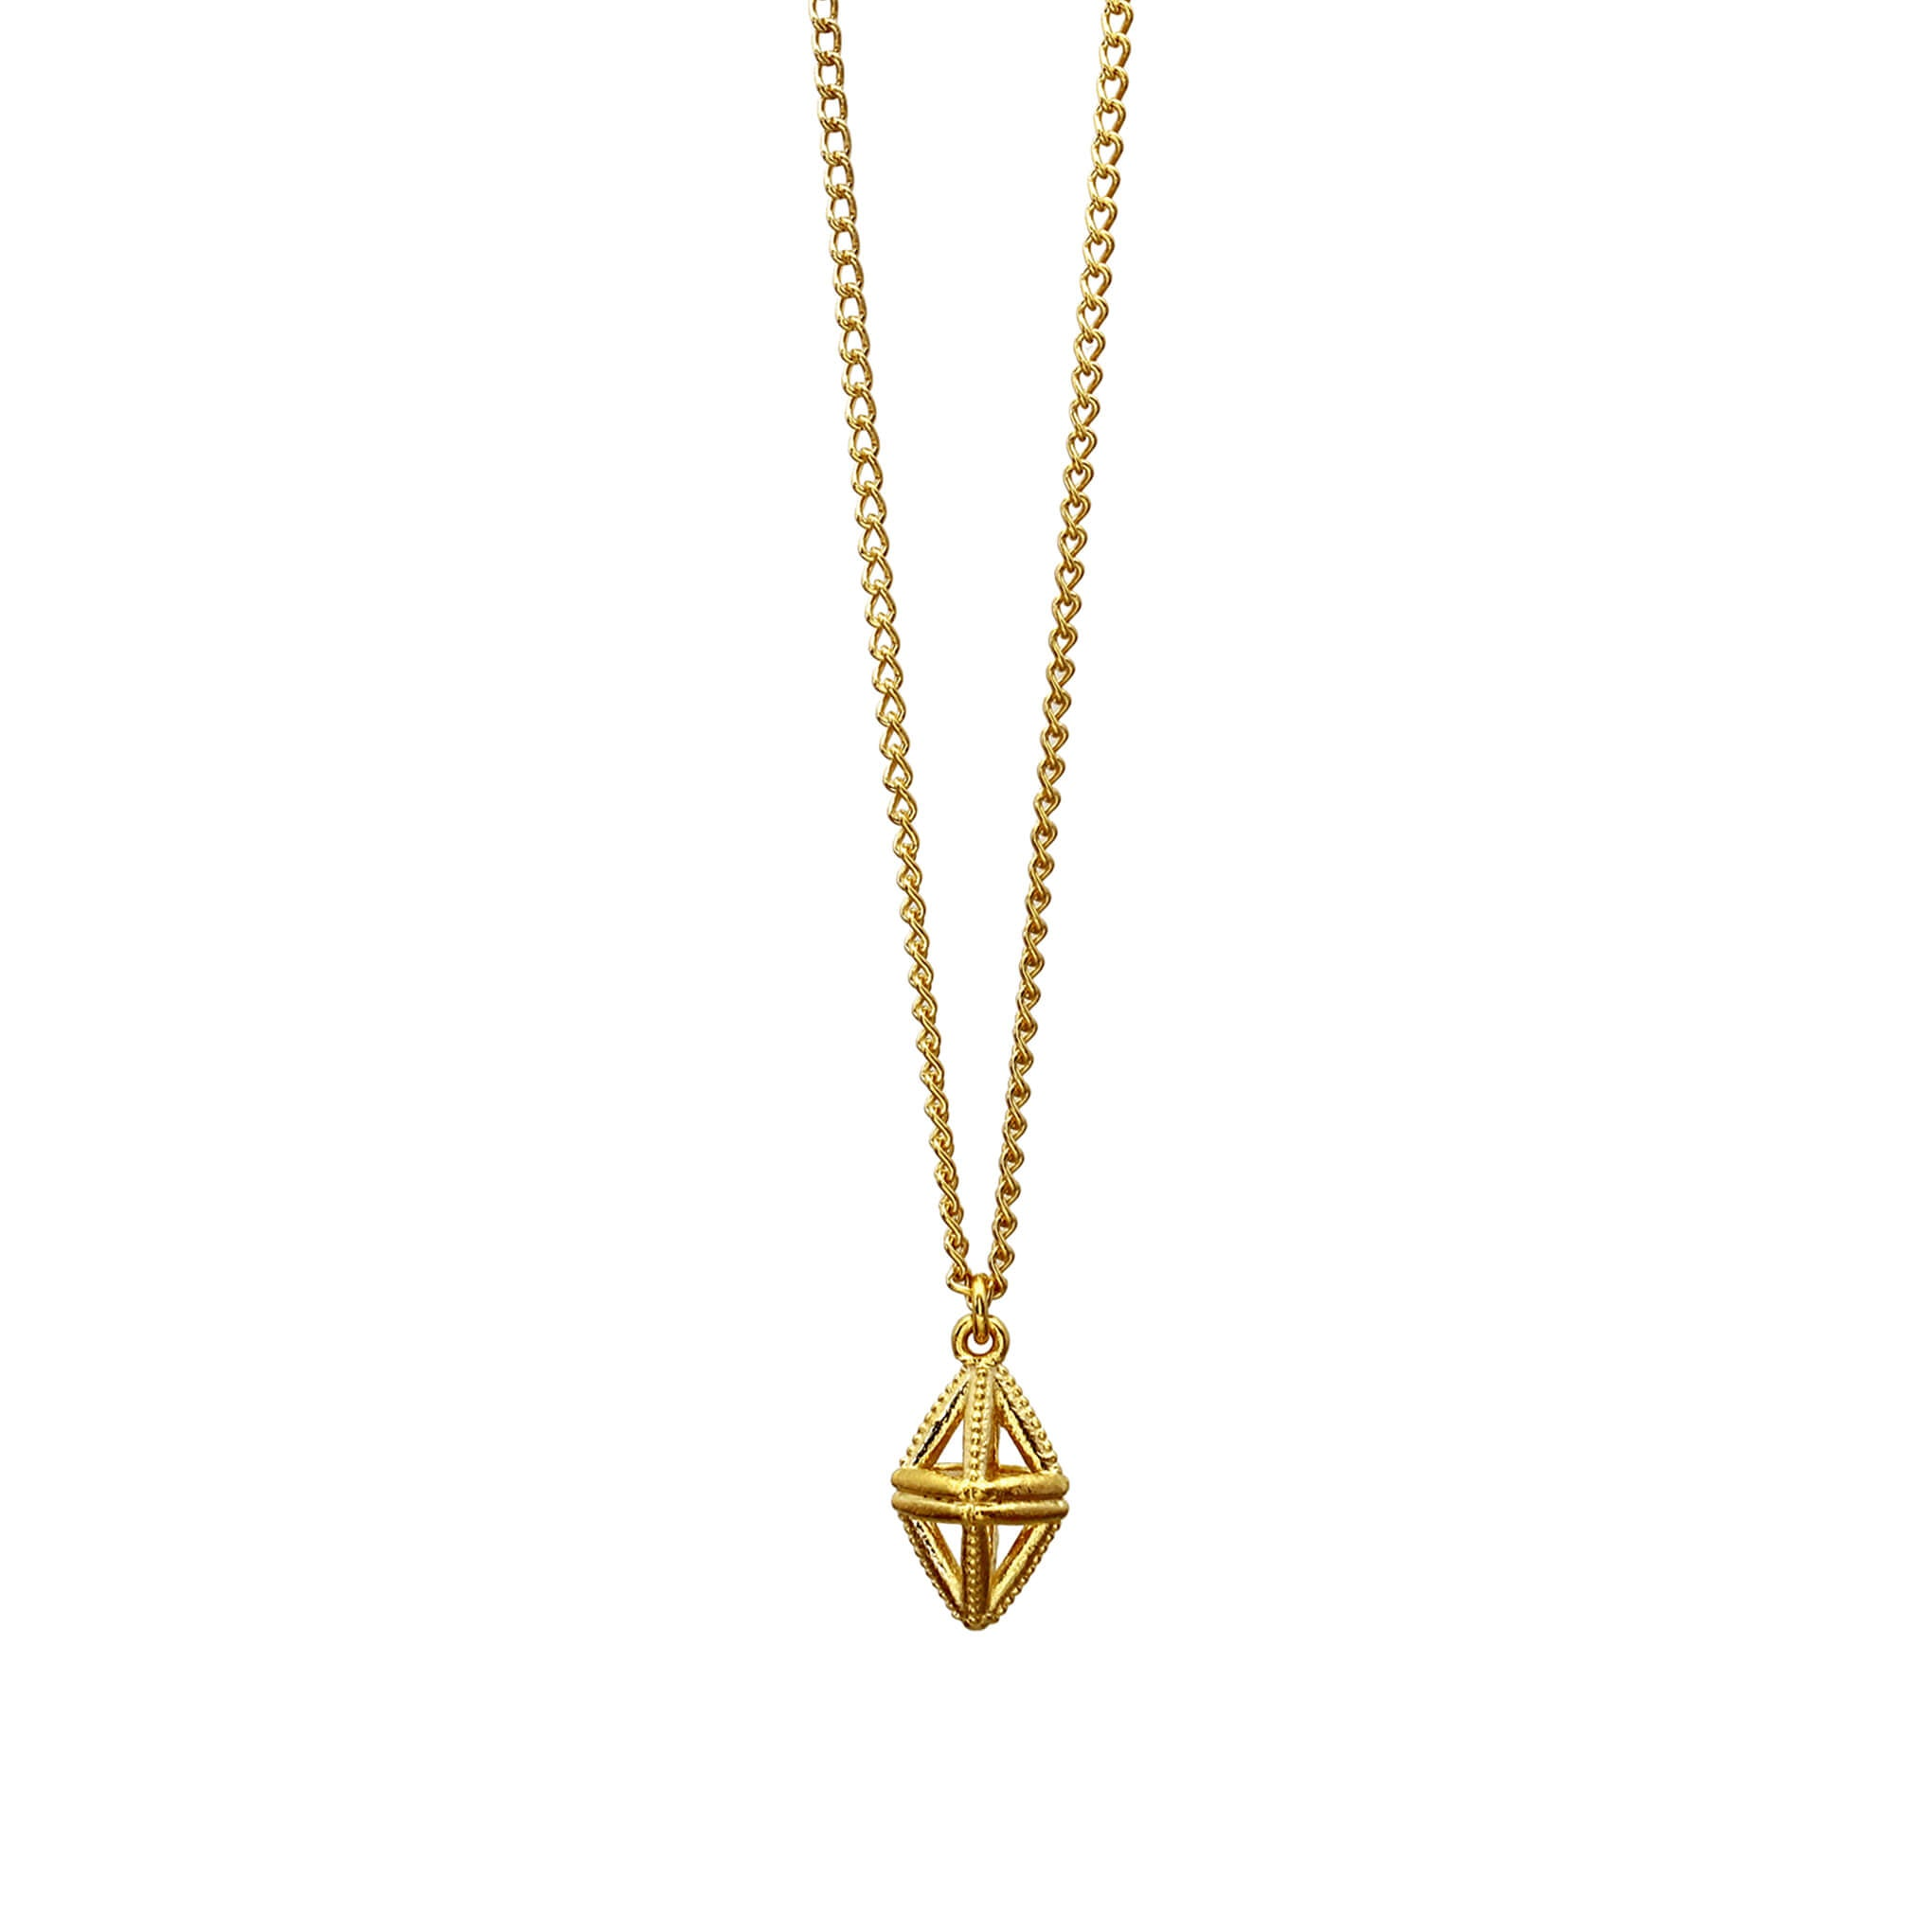 Silver and gold necklaces rosie kent jewellery mysid yellow gold pendant necklace mozeypictures Images